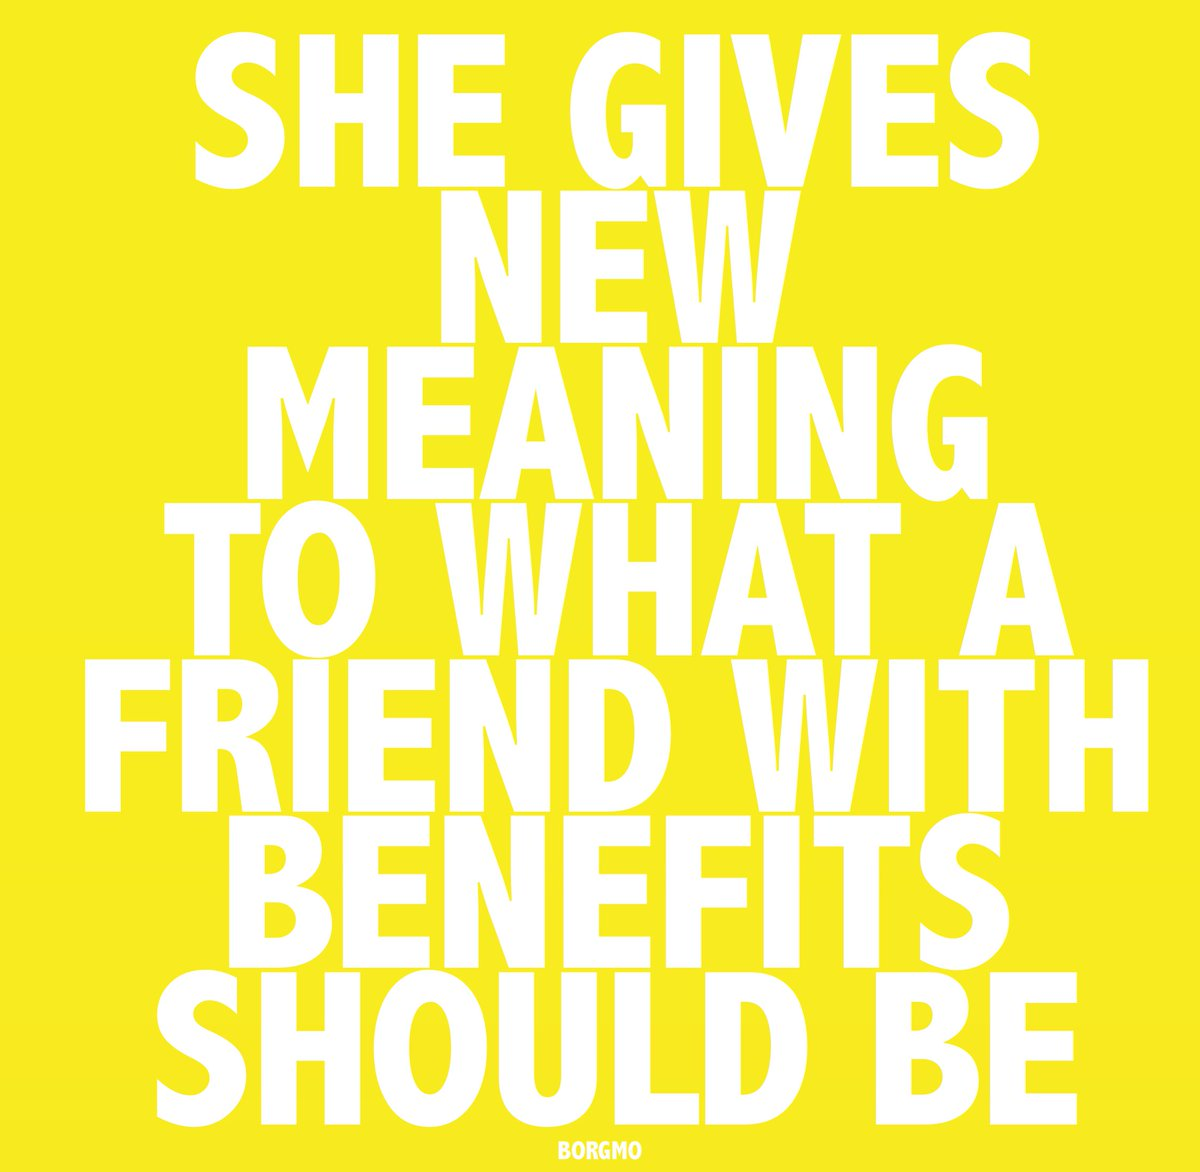 Friend with benefits meaning